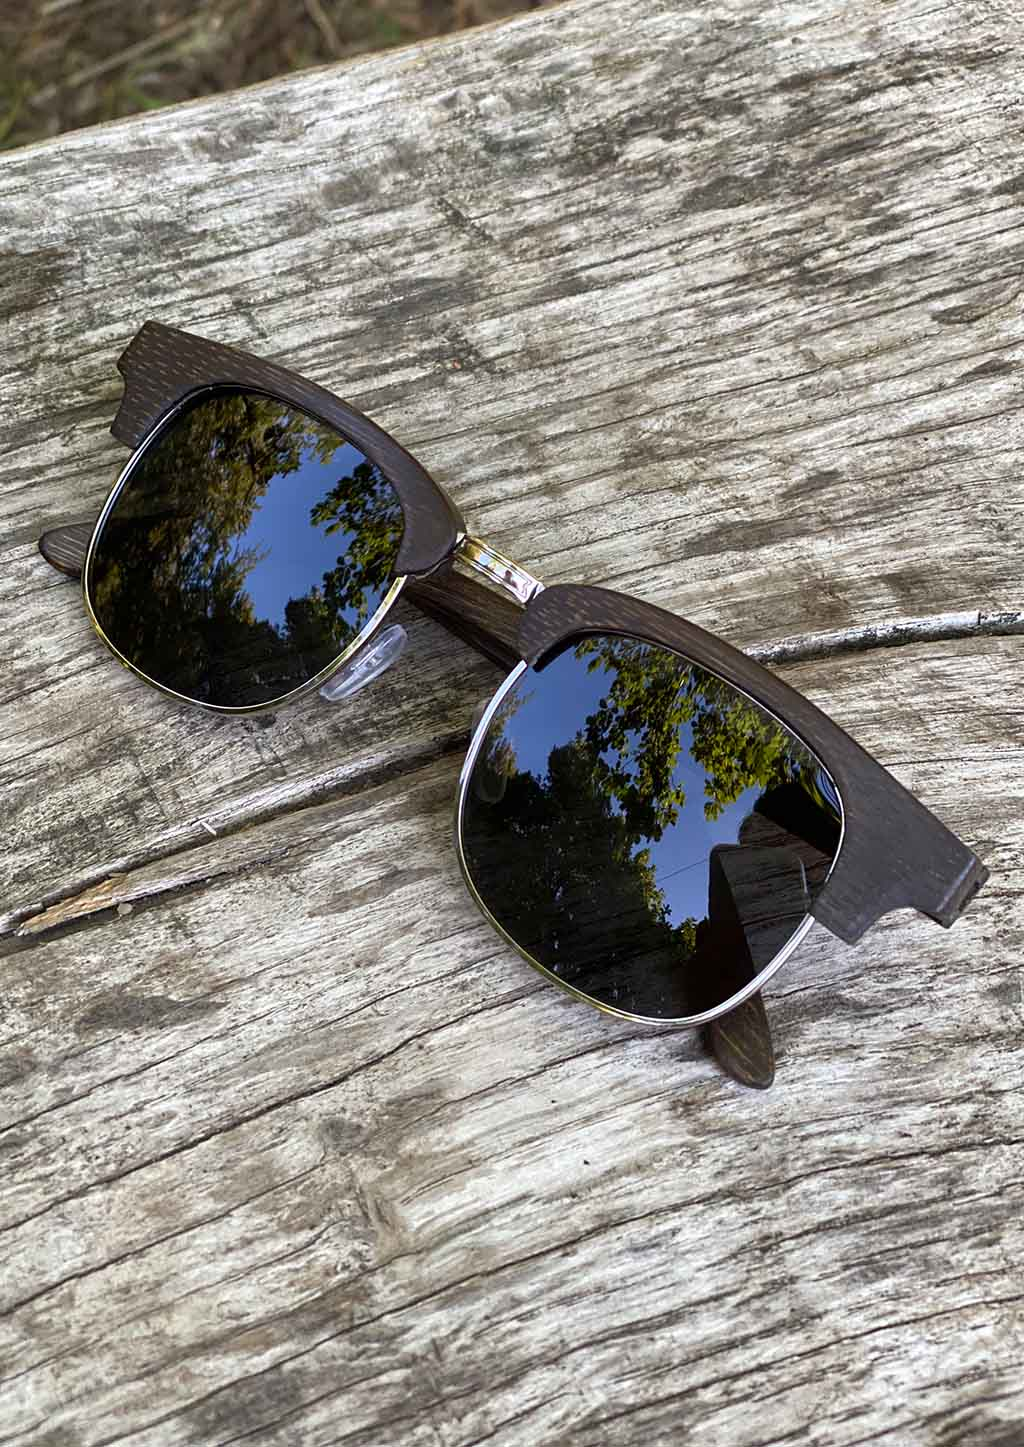 Eyewood Clubmasters is our cool take on classic model. This is Skyler with dark lenses. And also this model is made in all wood. Outside in the sun from the front.